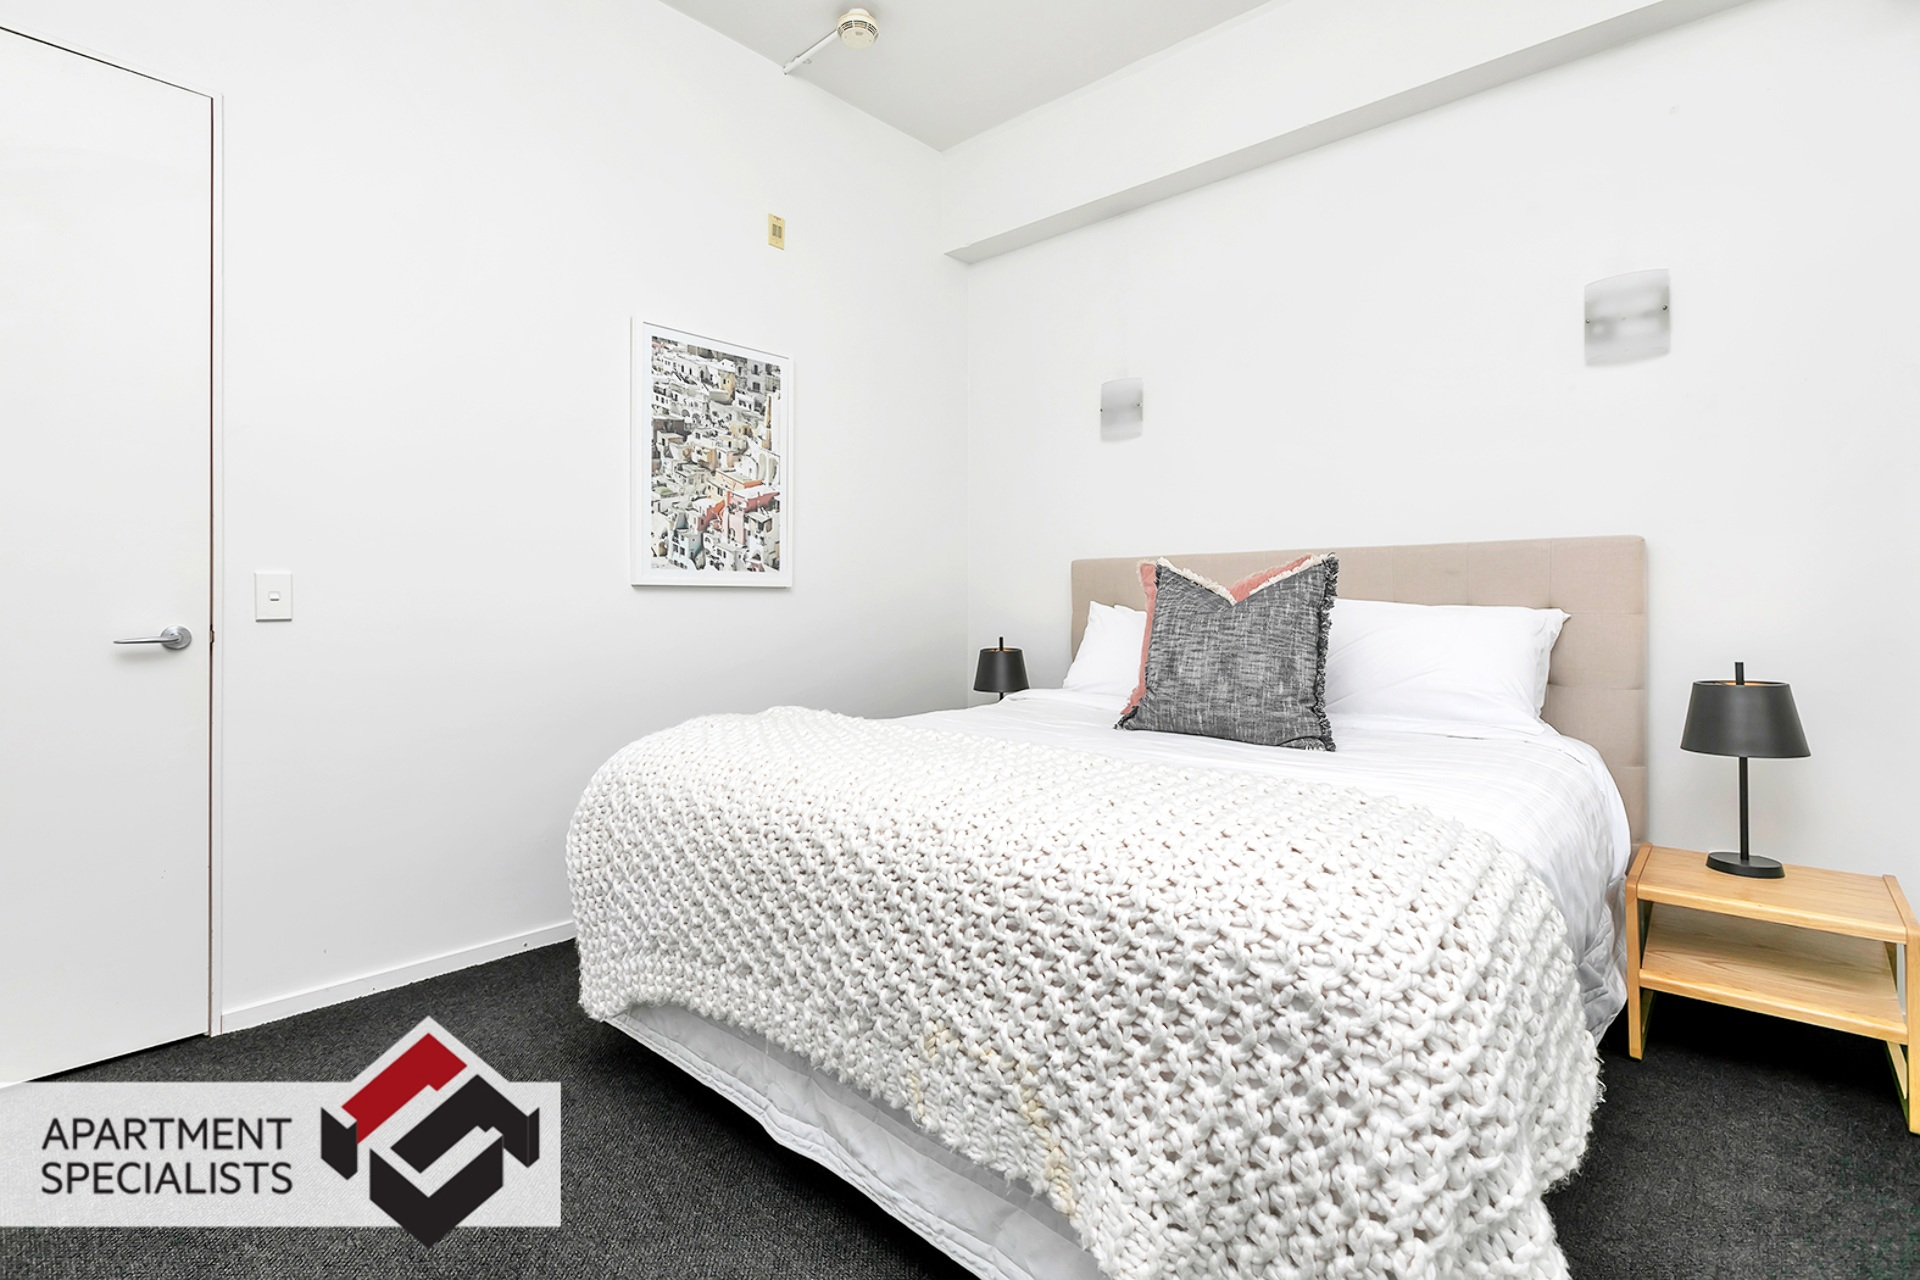 12 | 11 Durham Street East, City Centre | Apartment Specialists